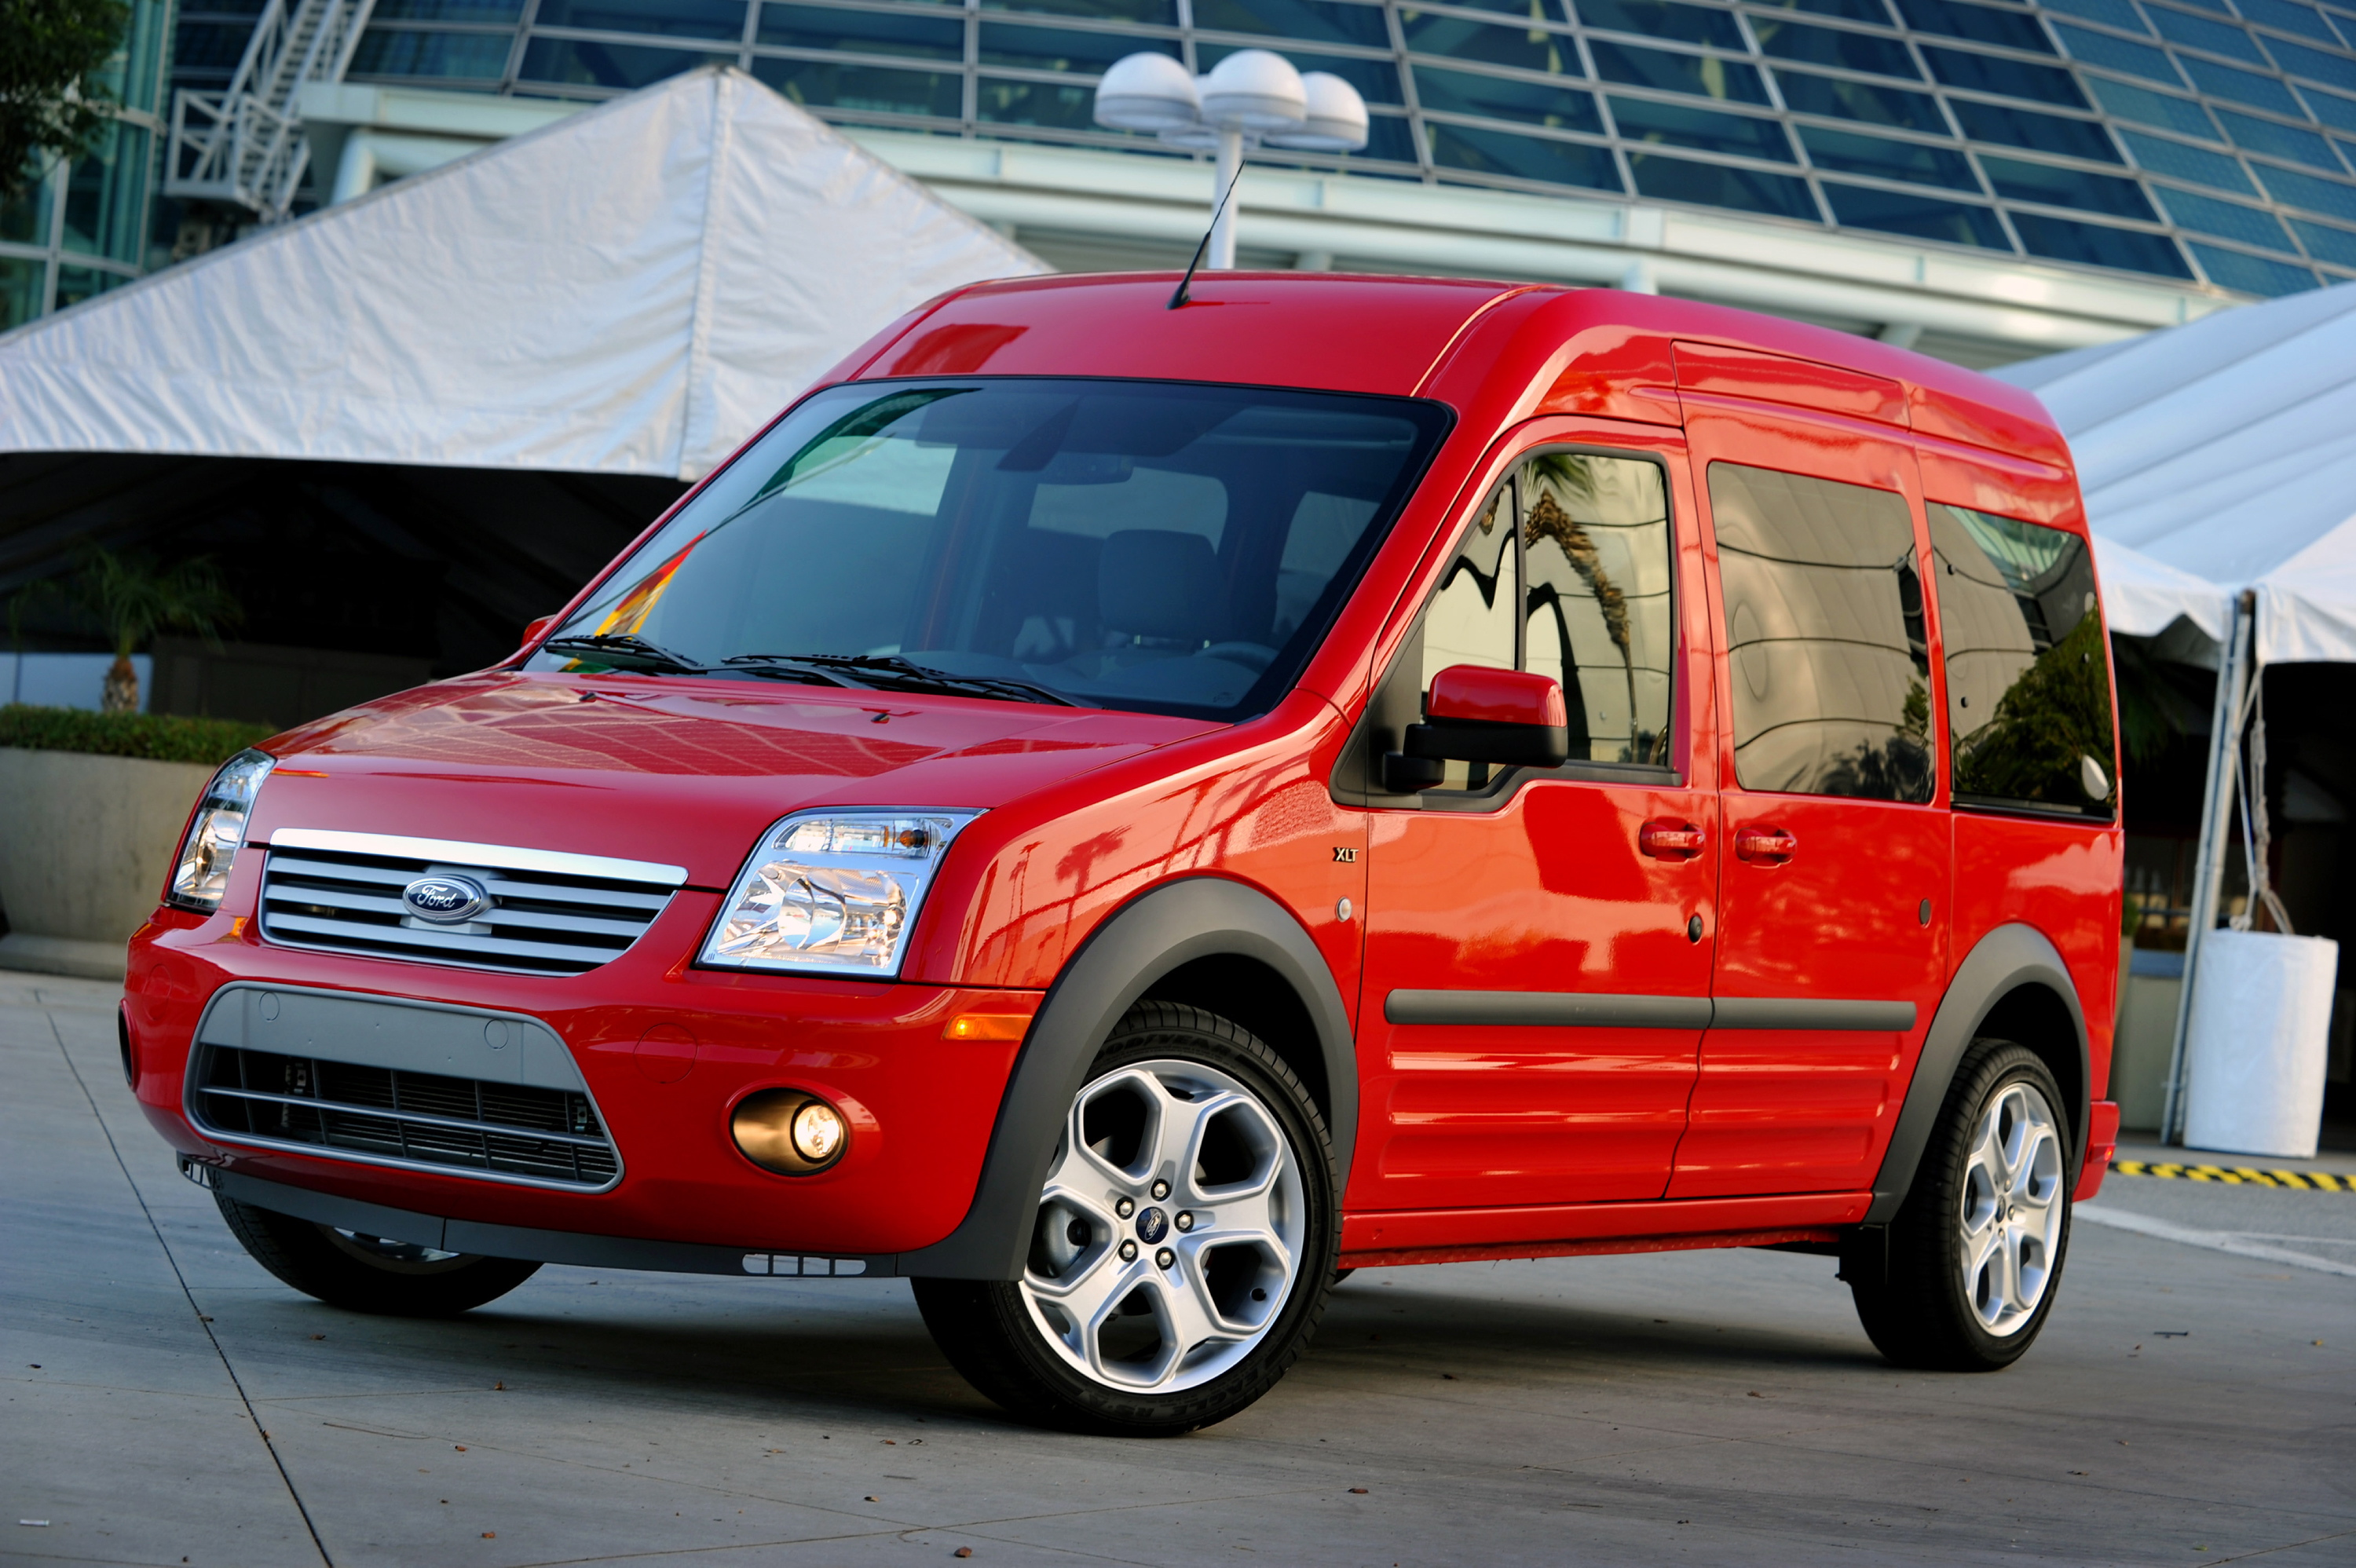 Mercedes Benz Of Boston >> 2011 Ford Transit Connect Wagon Review, Ratings, Specs, Prices, and Photos - The Car Connection